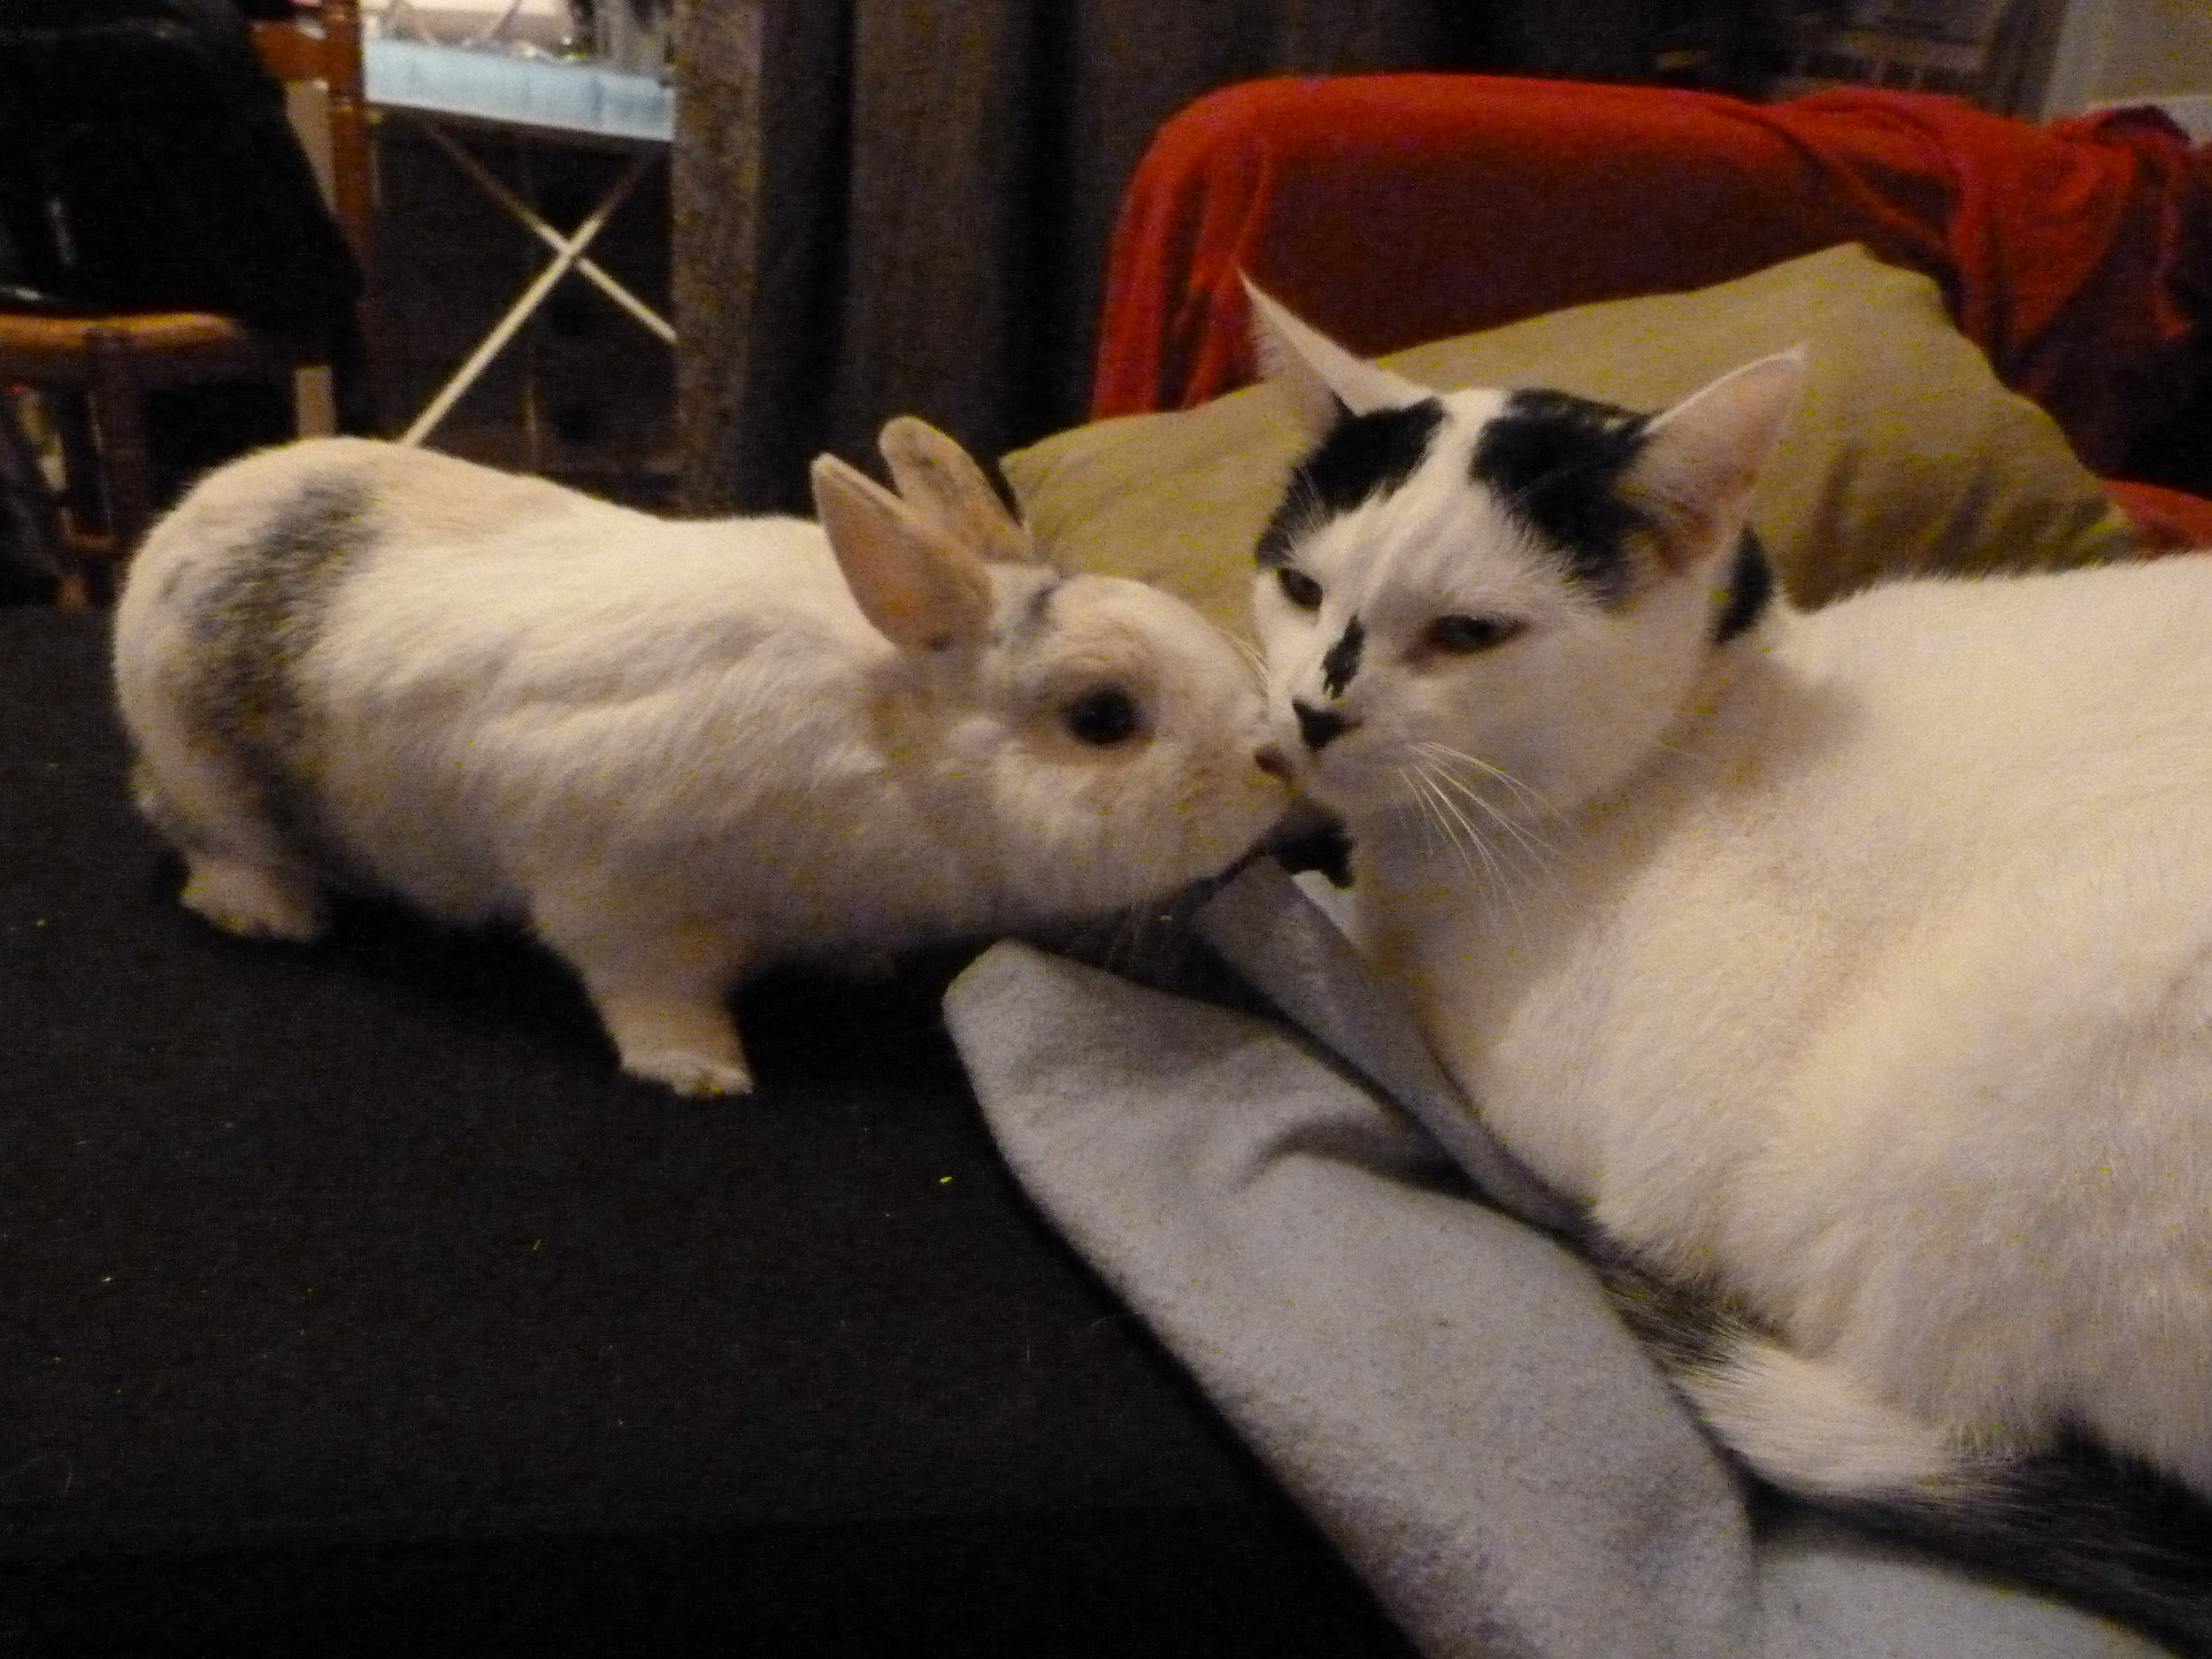 Bunny Tries to Cheer Up Kitty with Nose Kisses